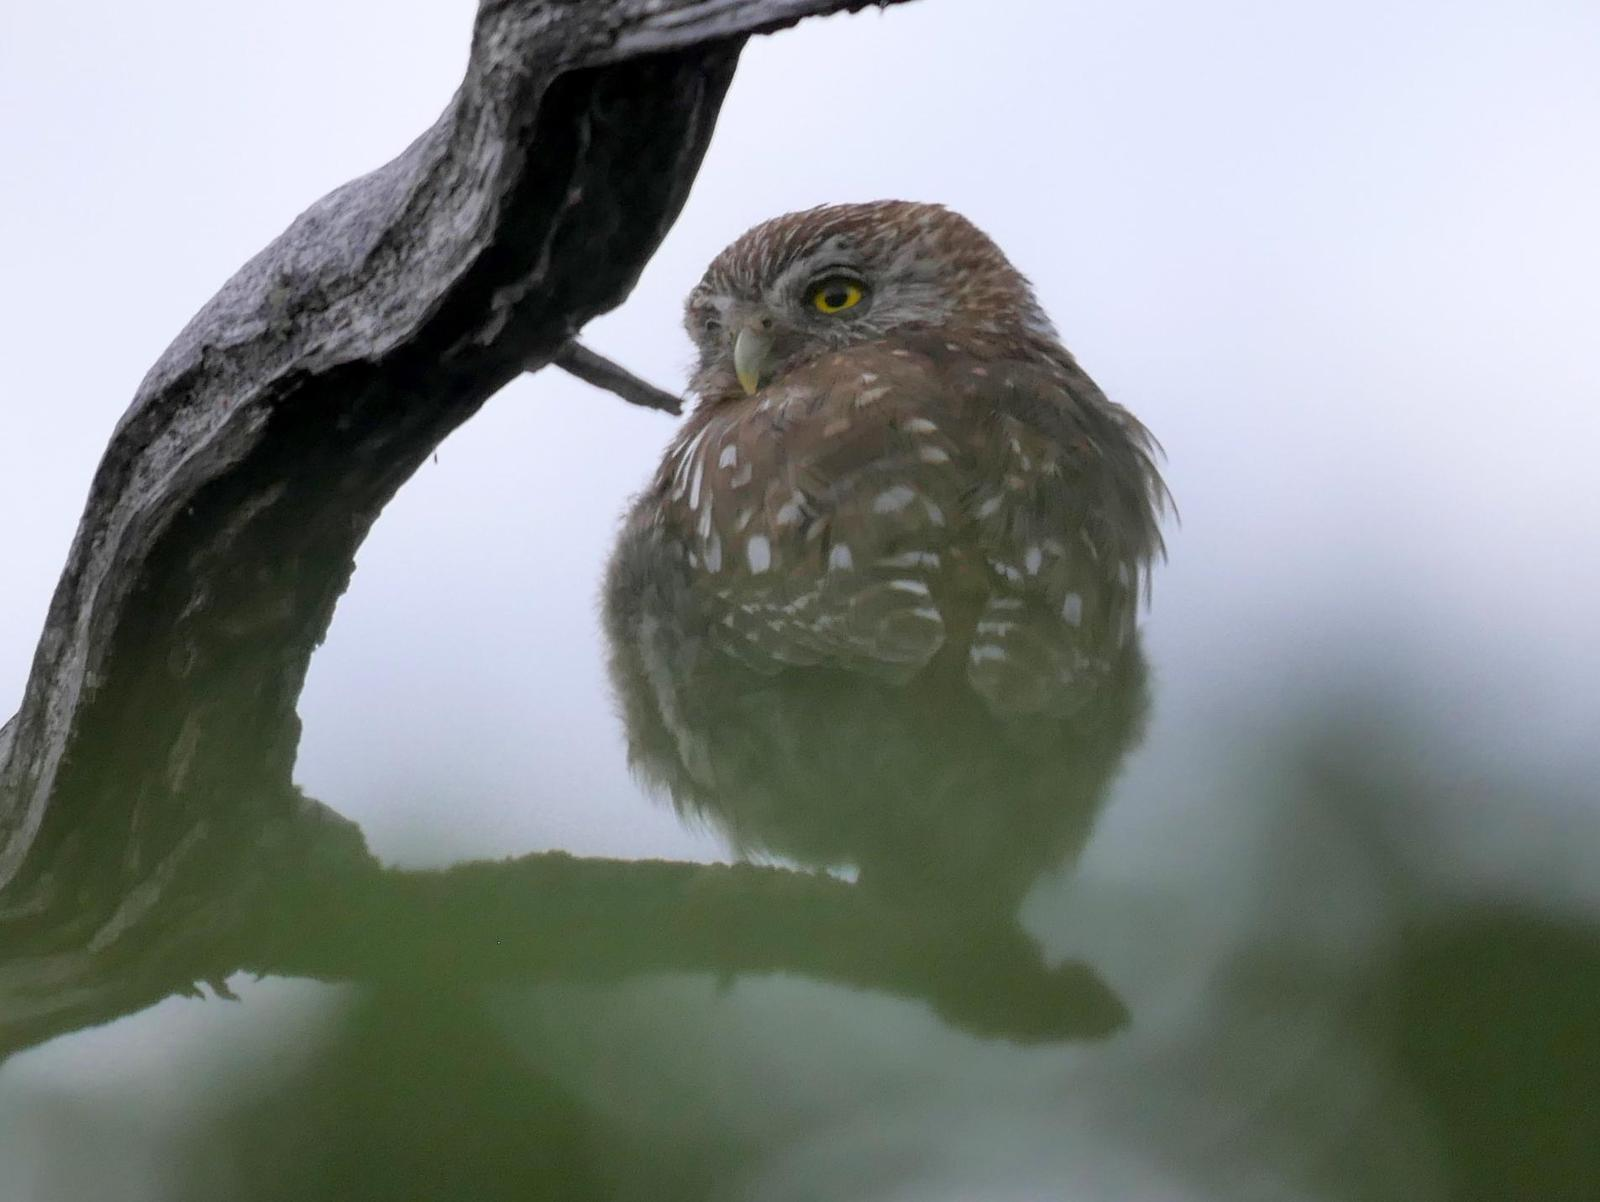 Austral Pygmy-Owl Photo by Peter Lowe